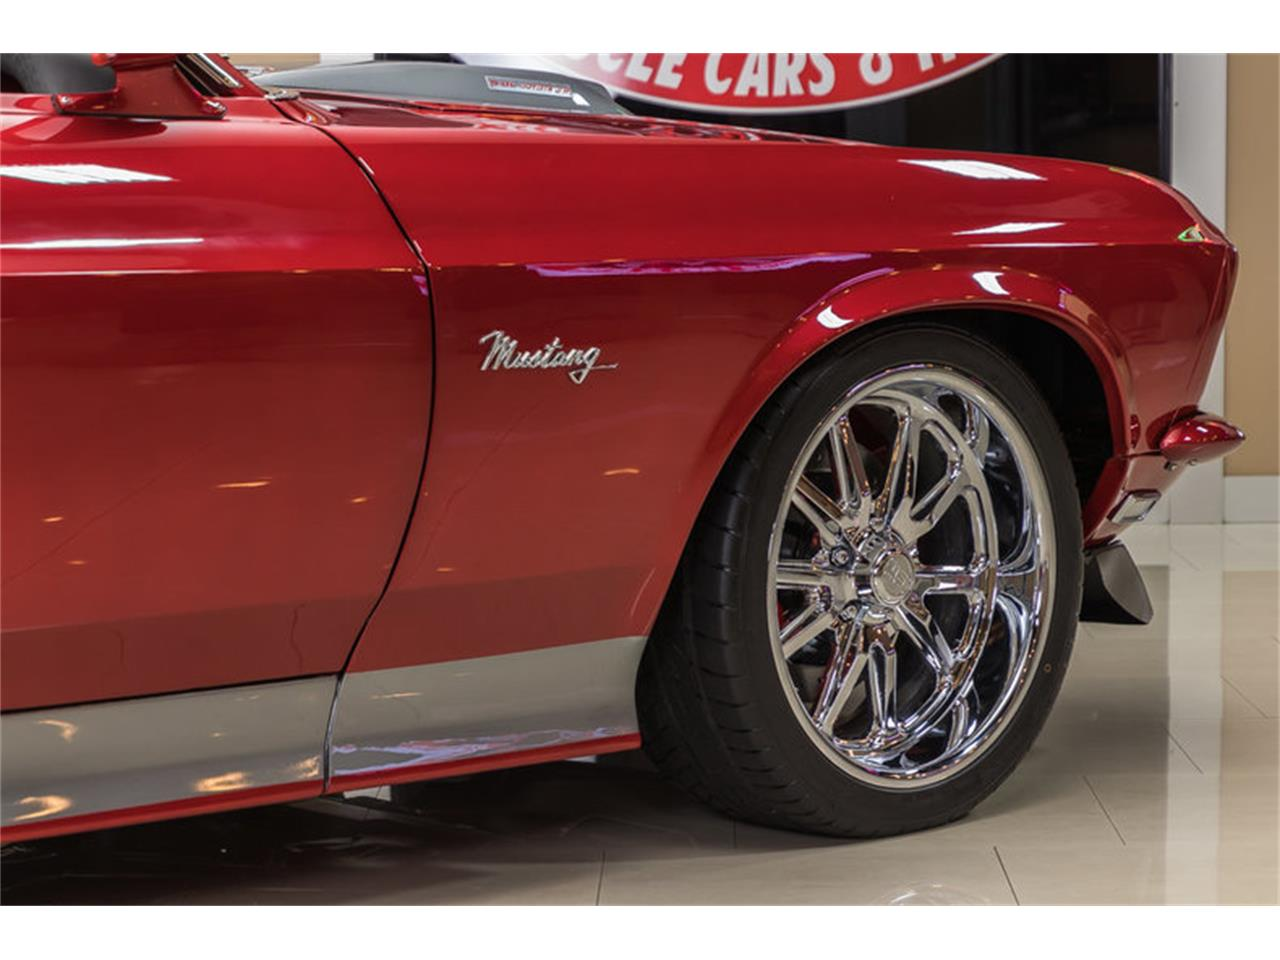 Large Picture of Classic '69 Mustang Fastback Restomod located in Michigan - $194,900.00 Offered by Vanguard Motor Sales - L6C8